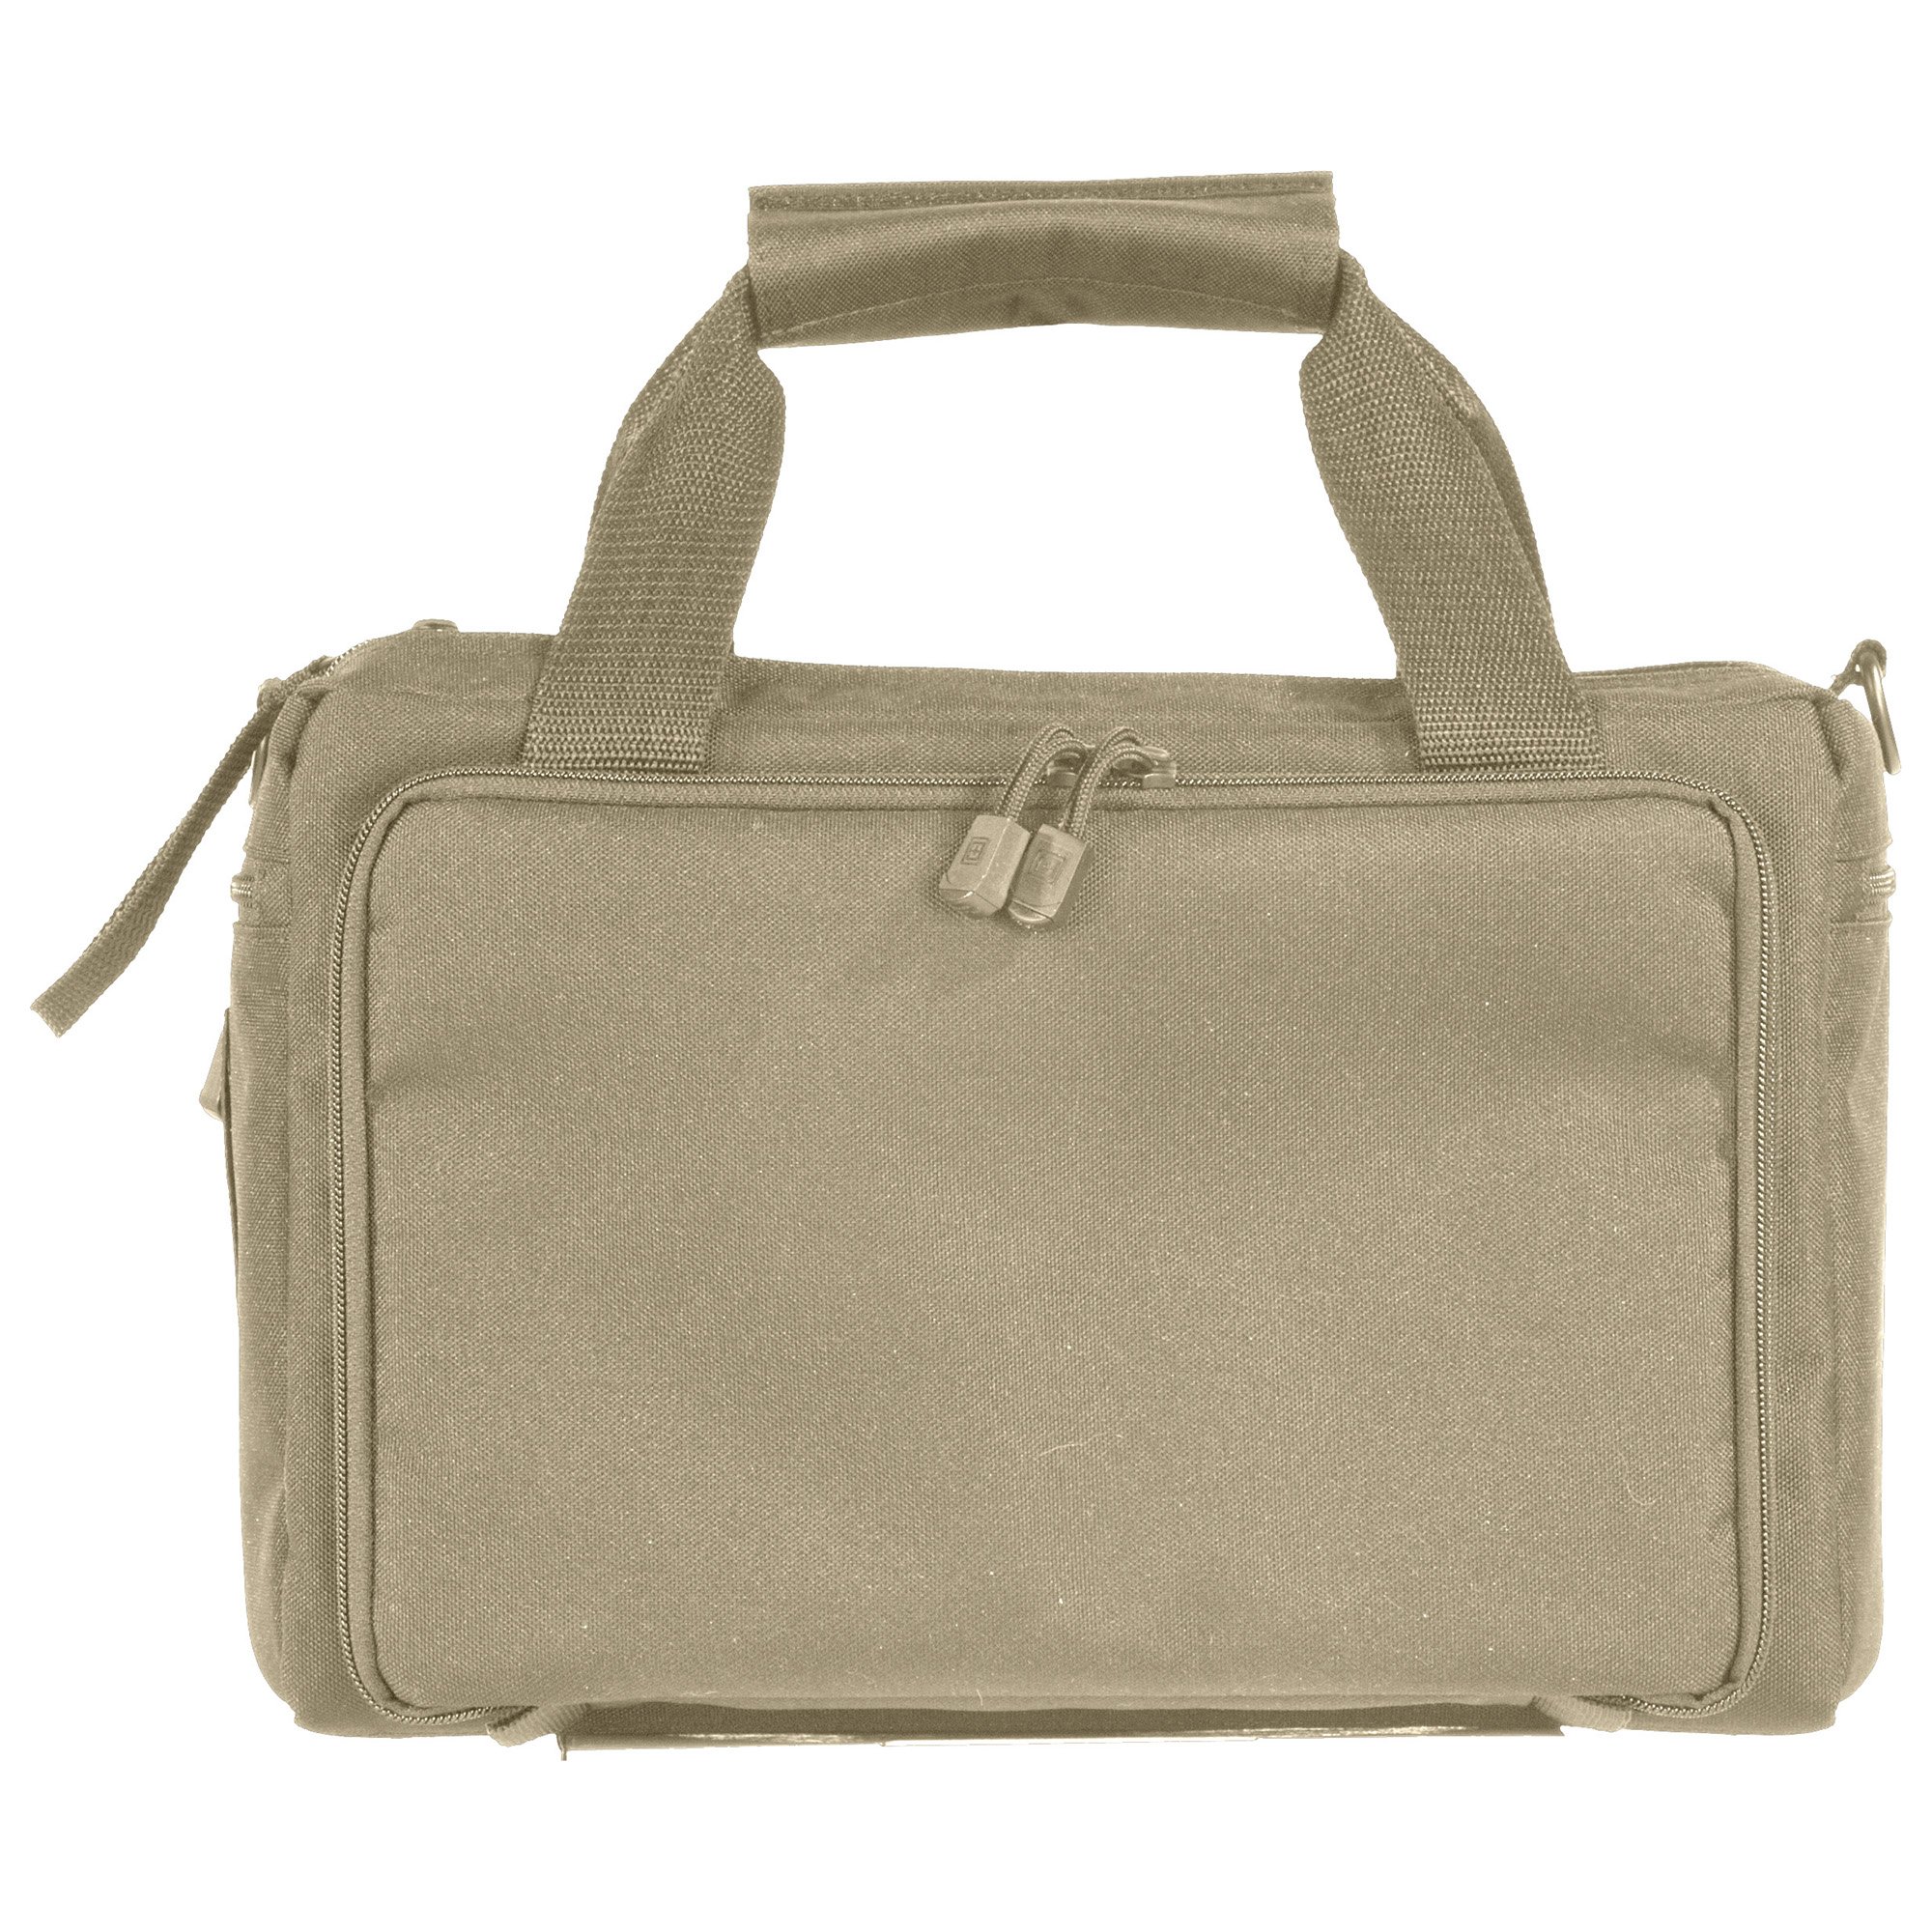 5.11 Tactical Range Qualifier Bag, Sandstone thumbnail